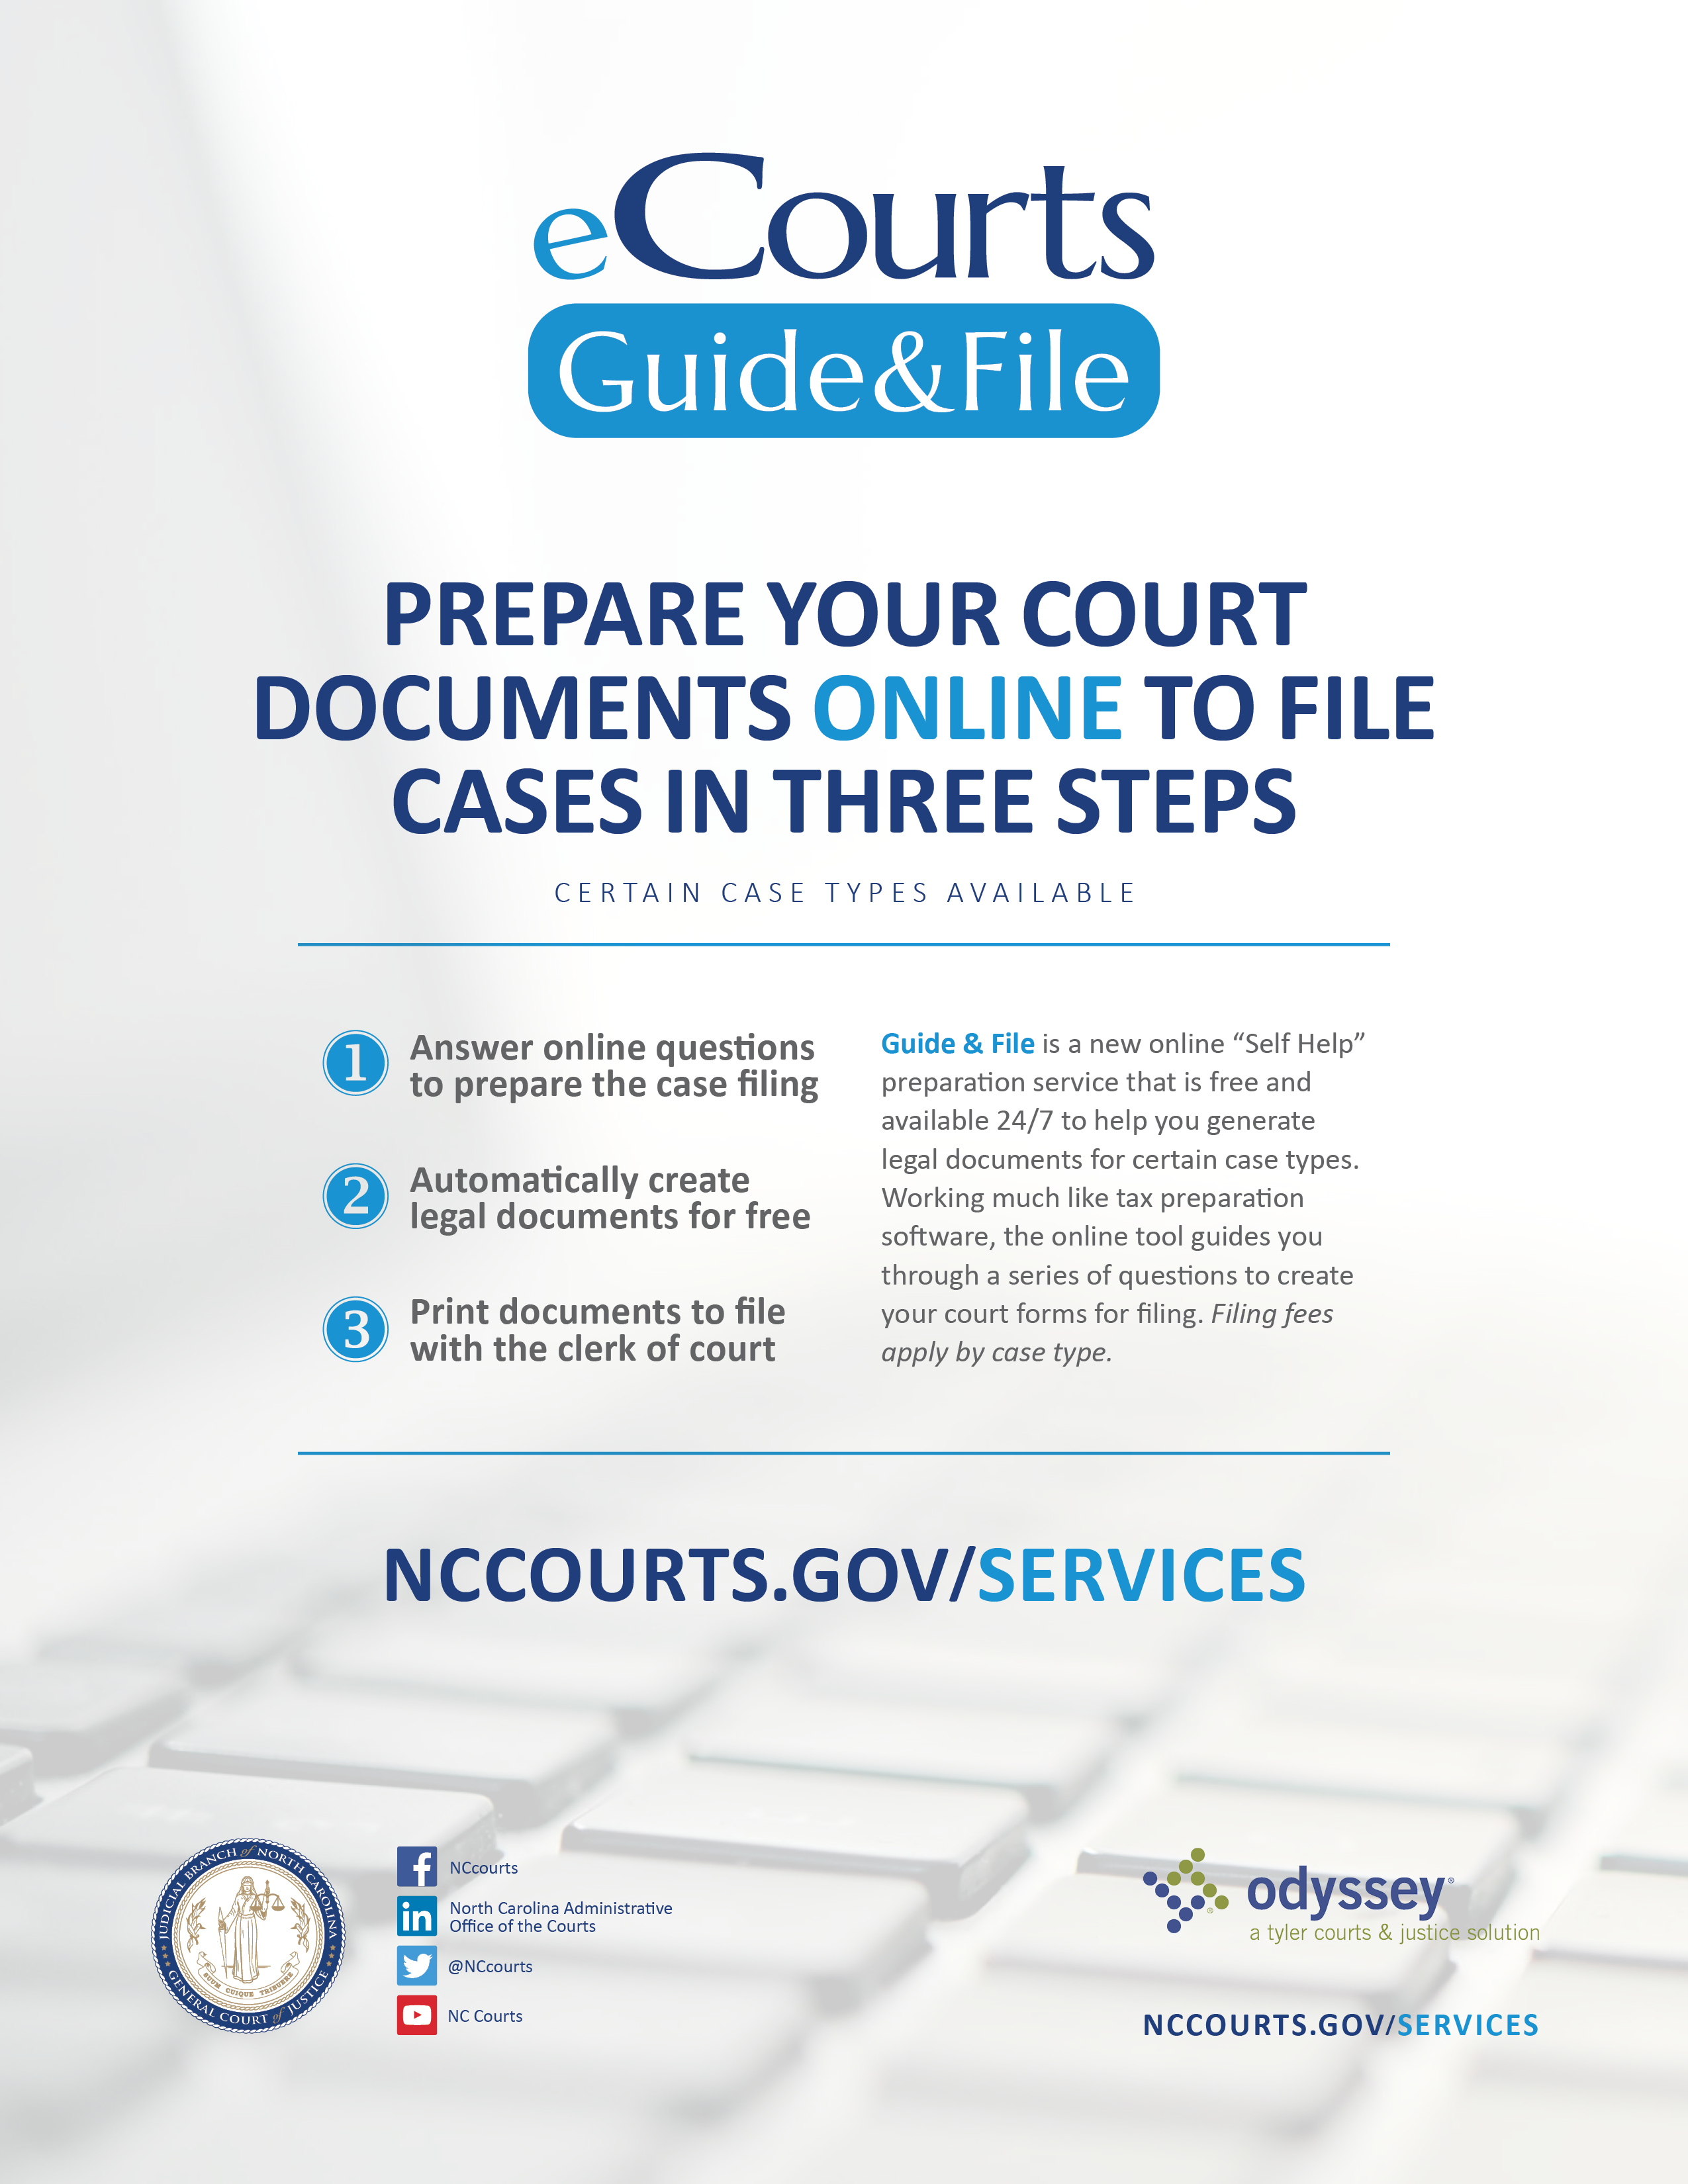 eCourts Guide & File poster